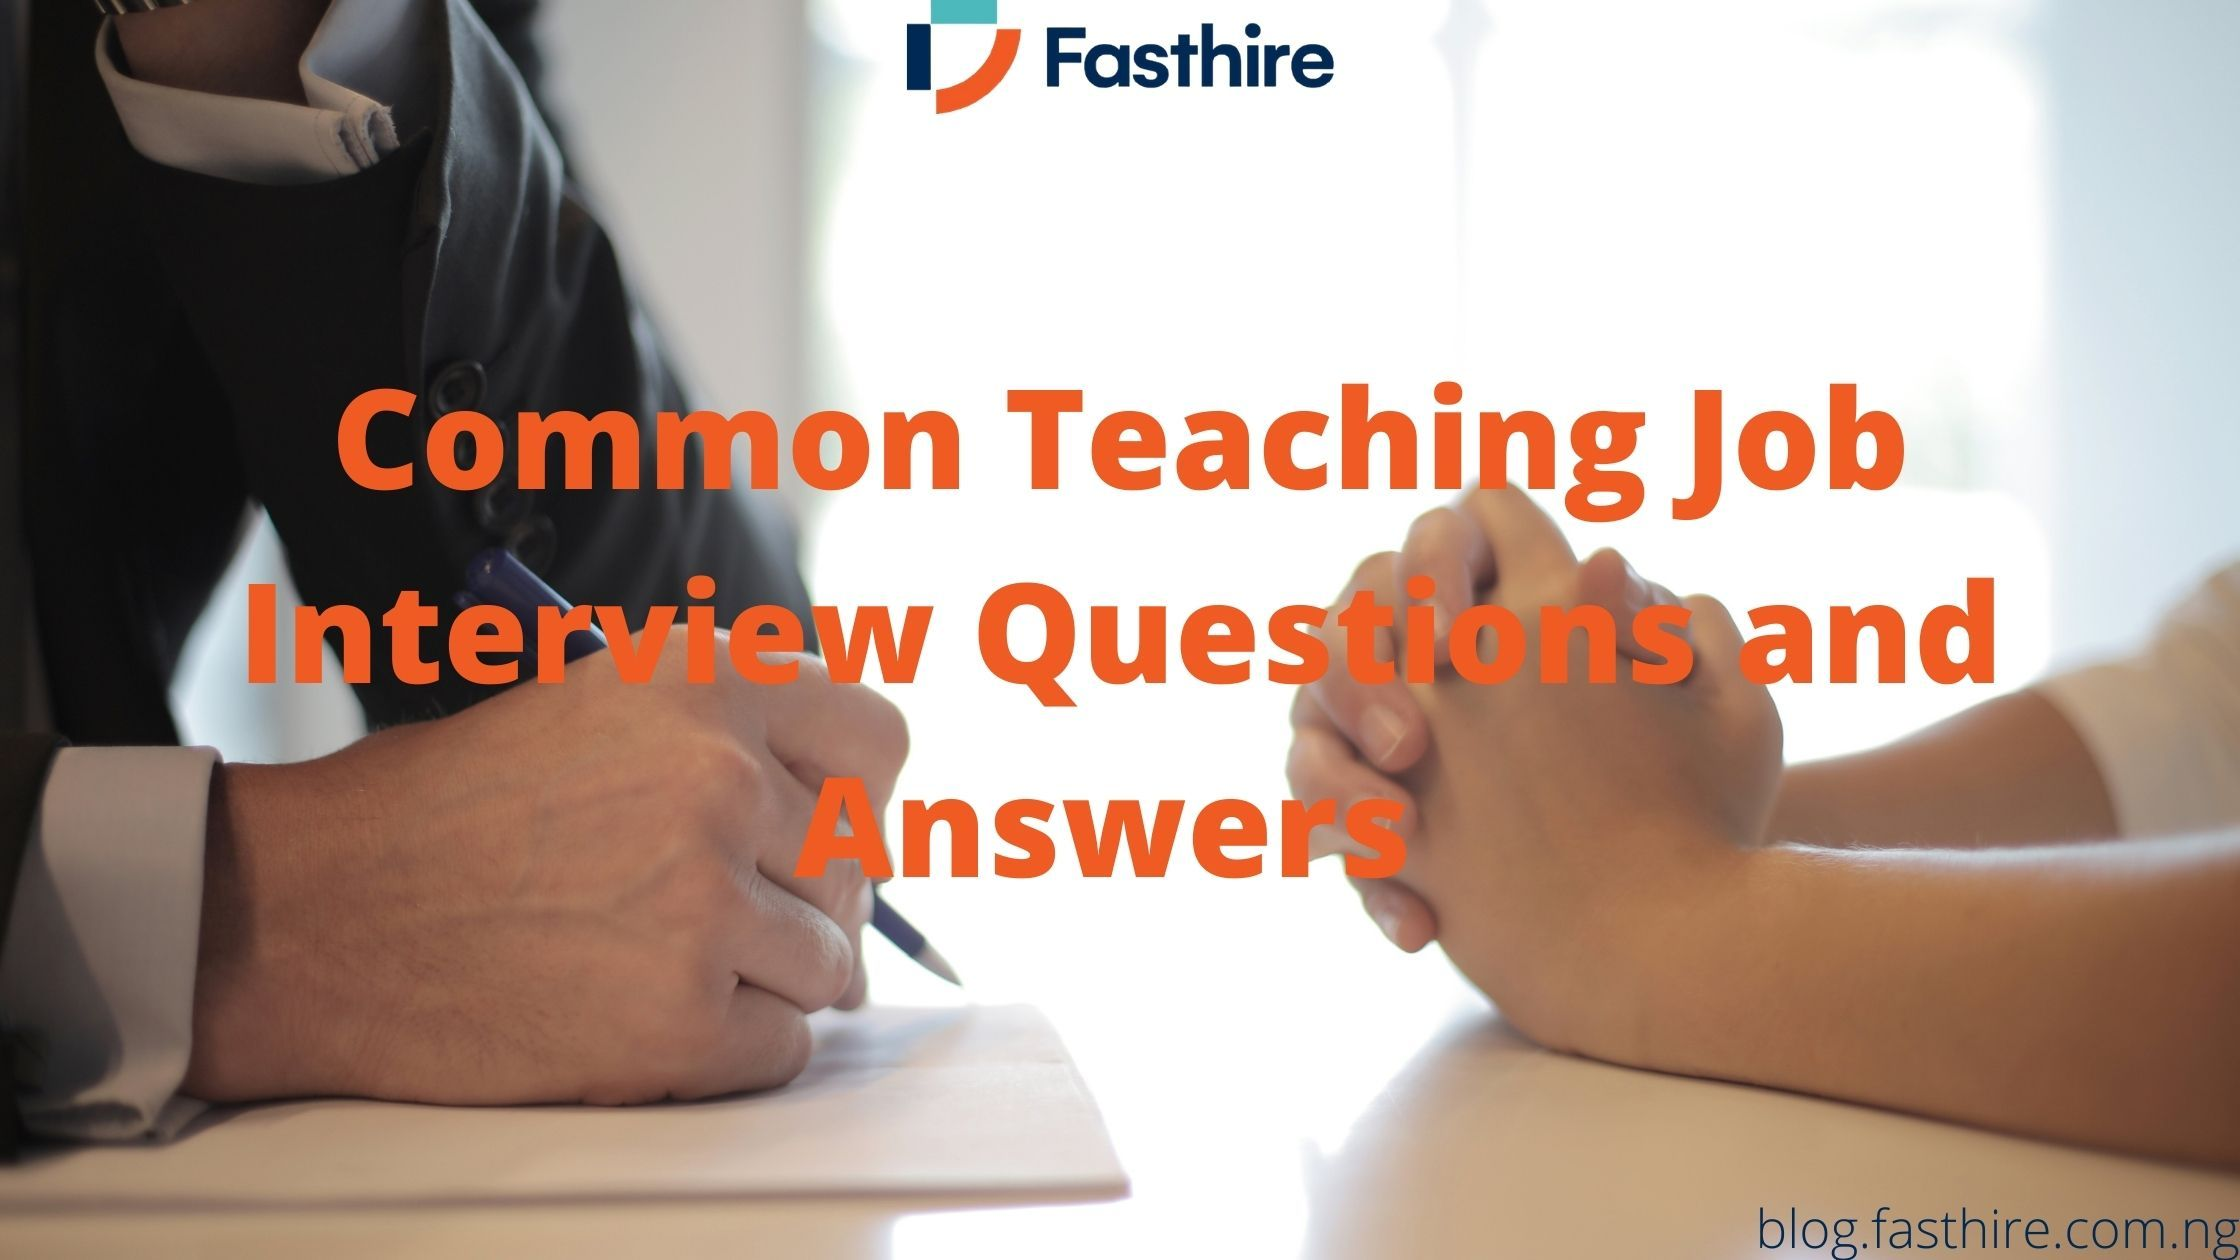 Common Teaching Job Interview Questions and Answers